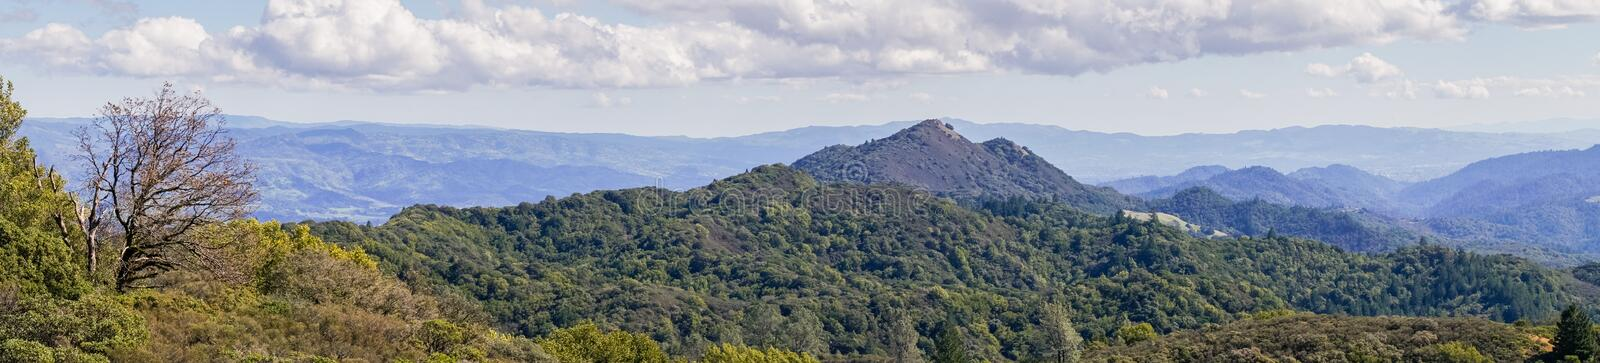 Panorama in Sugarloaf Ridge State Park, Sonoma County, California stock photos